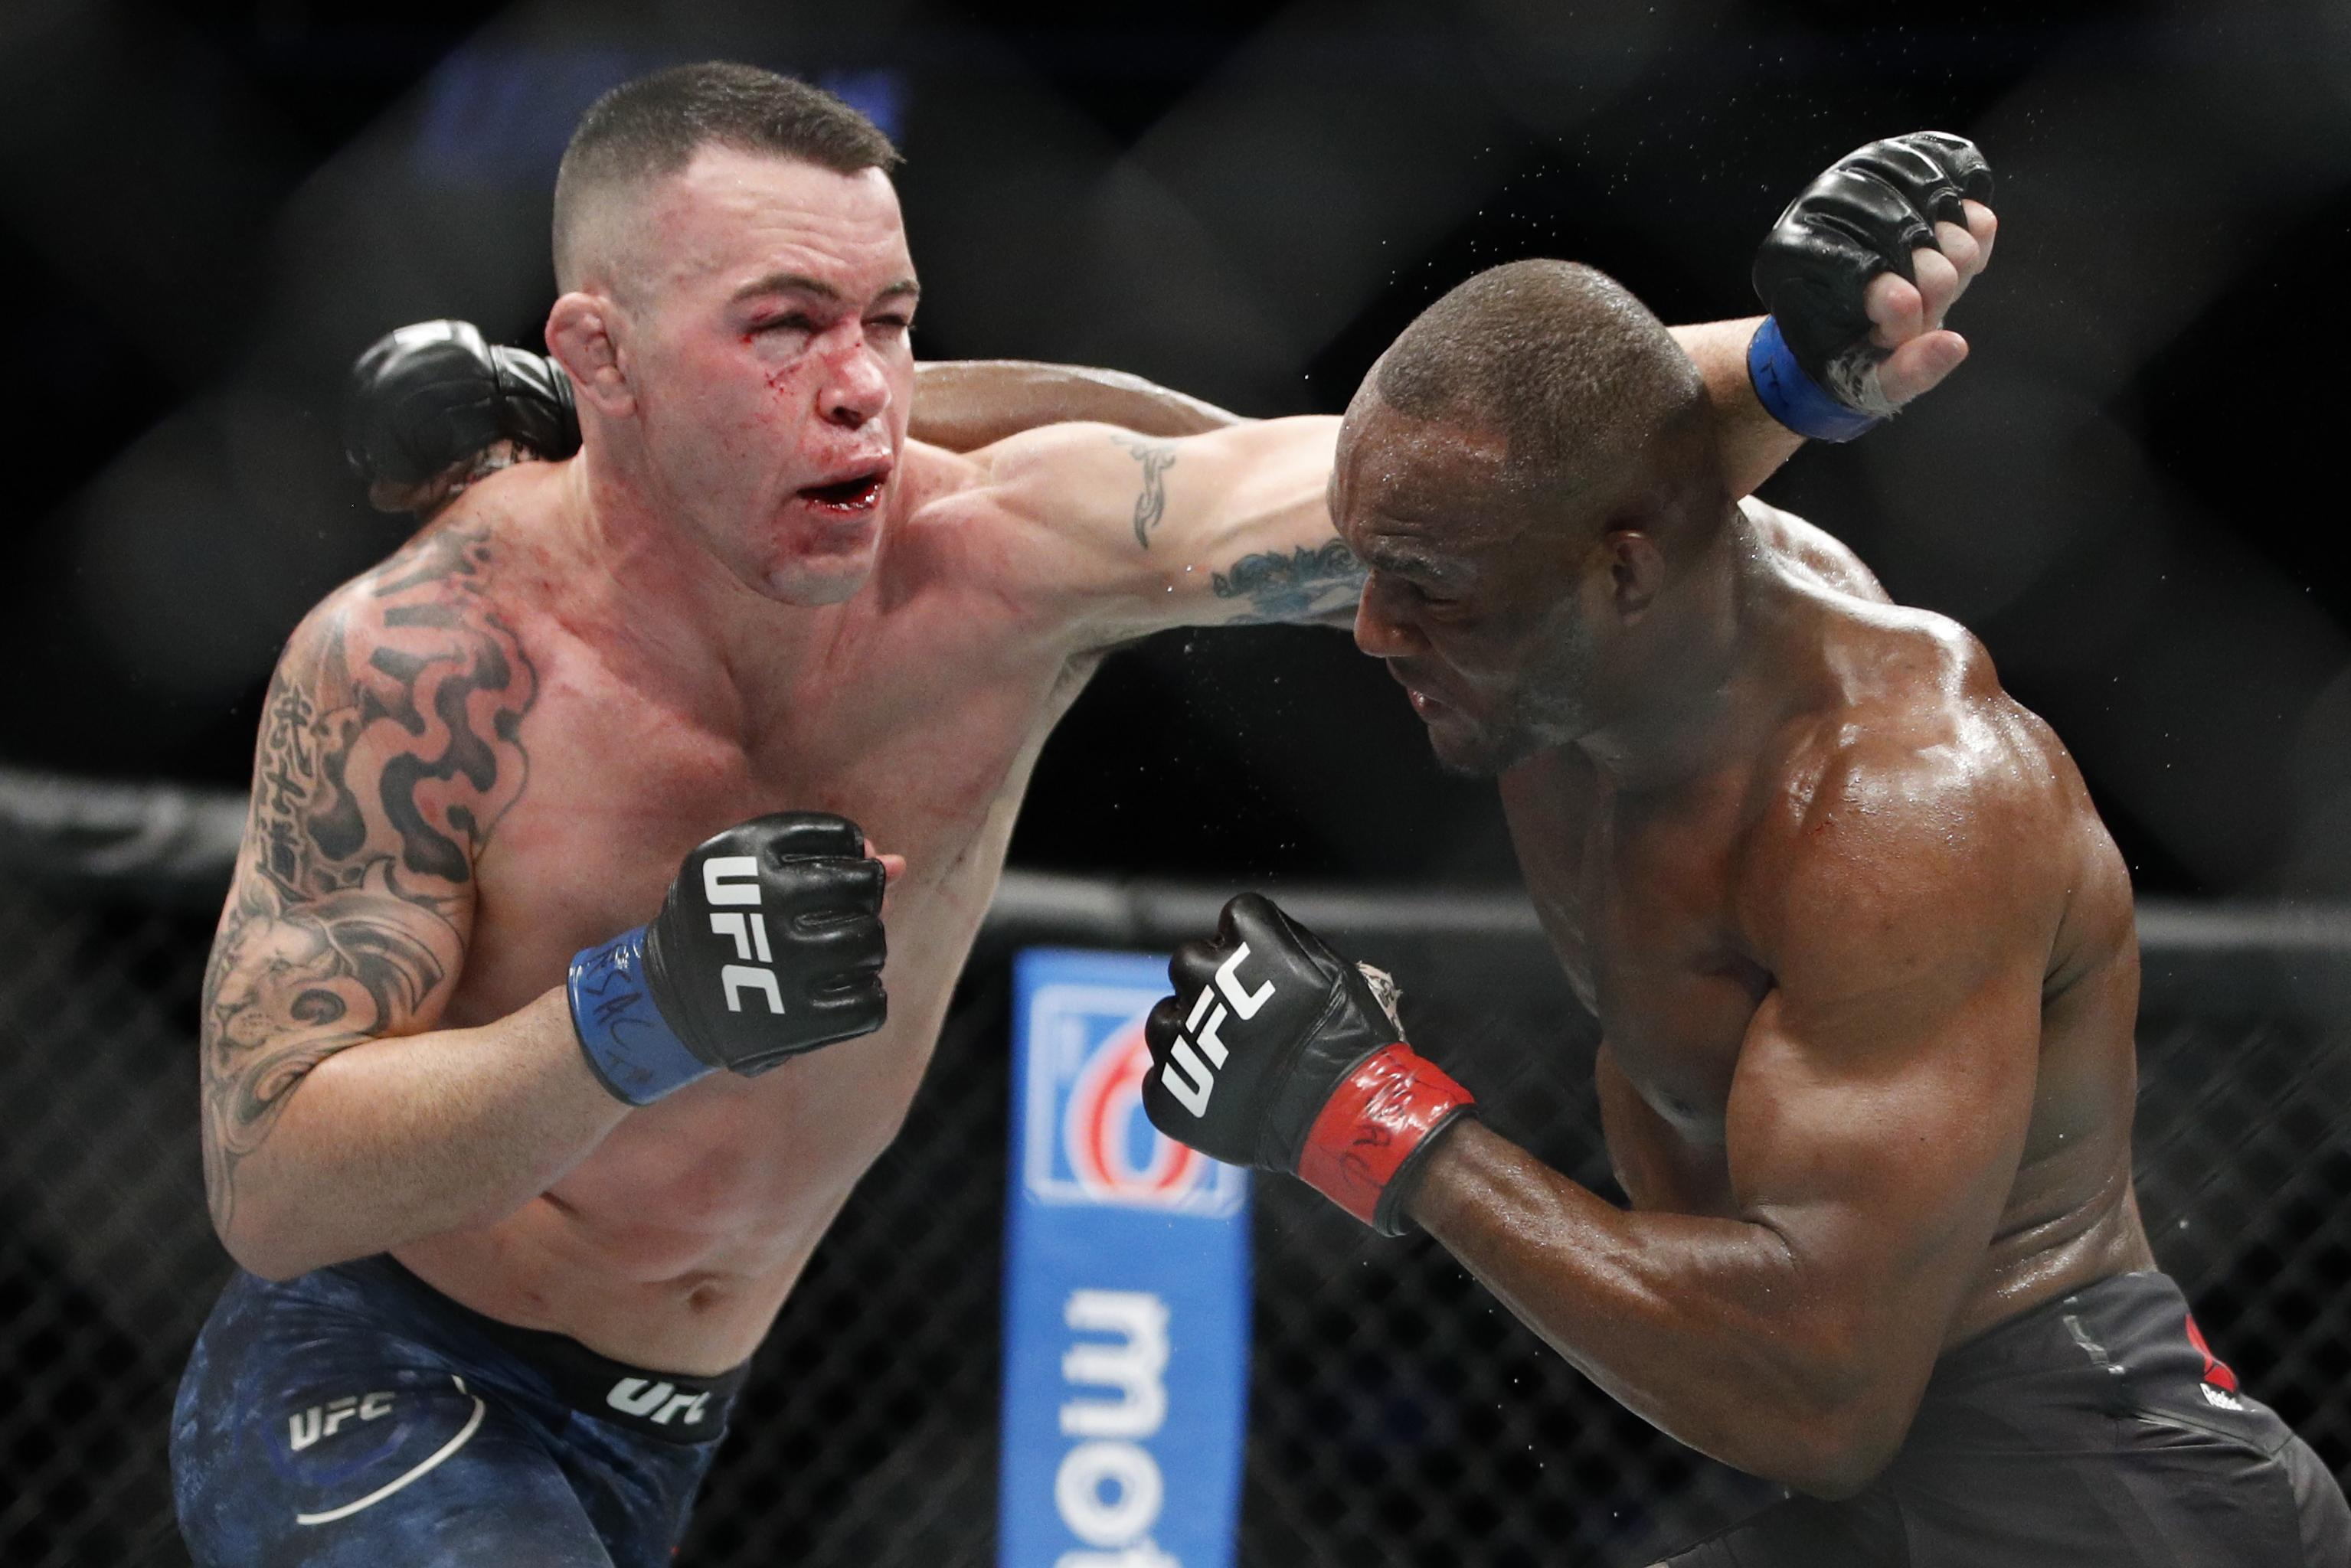 Ufc Fight Night 178 Results Colby Covington Dominates Tyron Woodley In Tko Win Bleacher Report Latest News Videos And Highlights